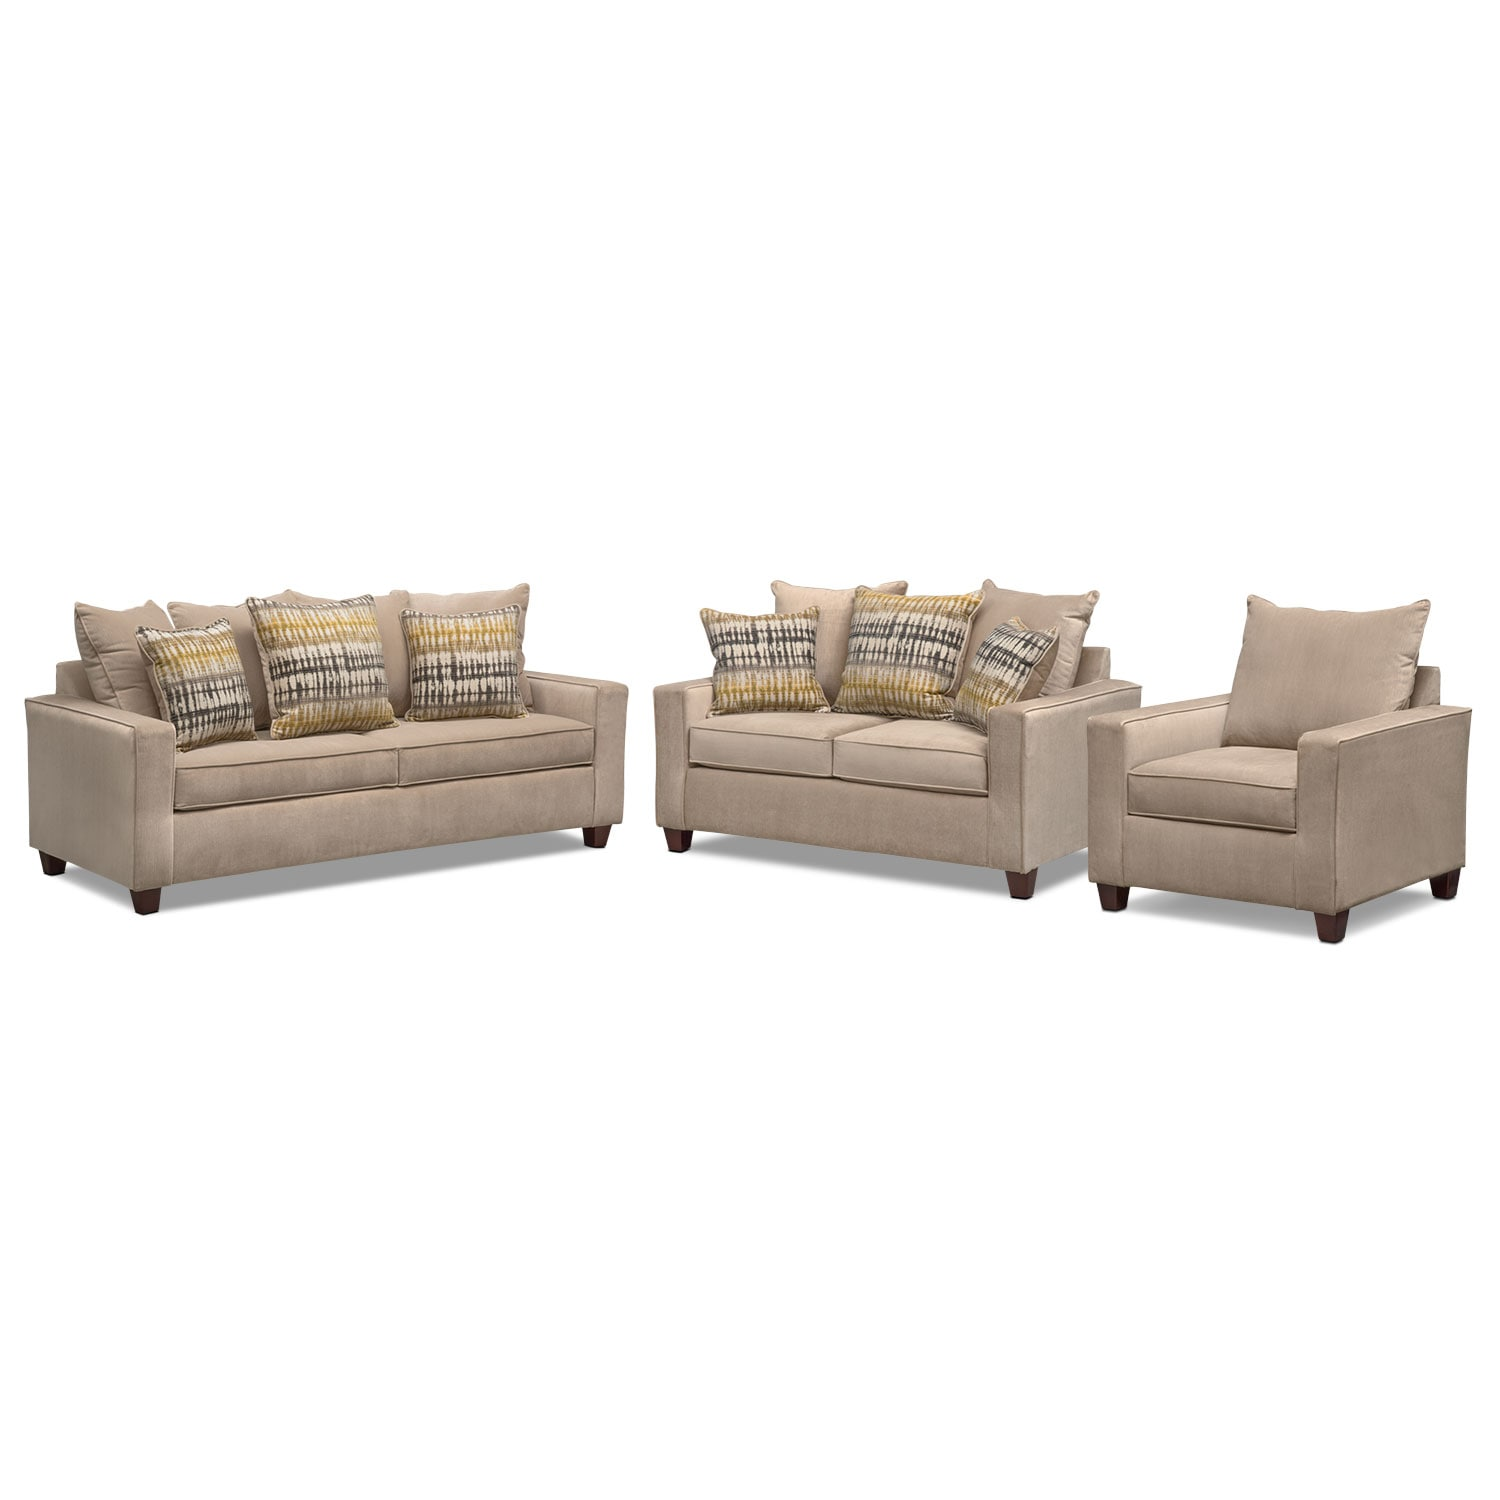 Bryden Sofa, Loveseat and Chair Set - Beige